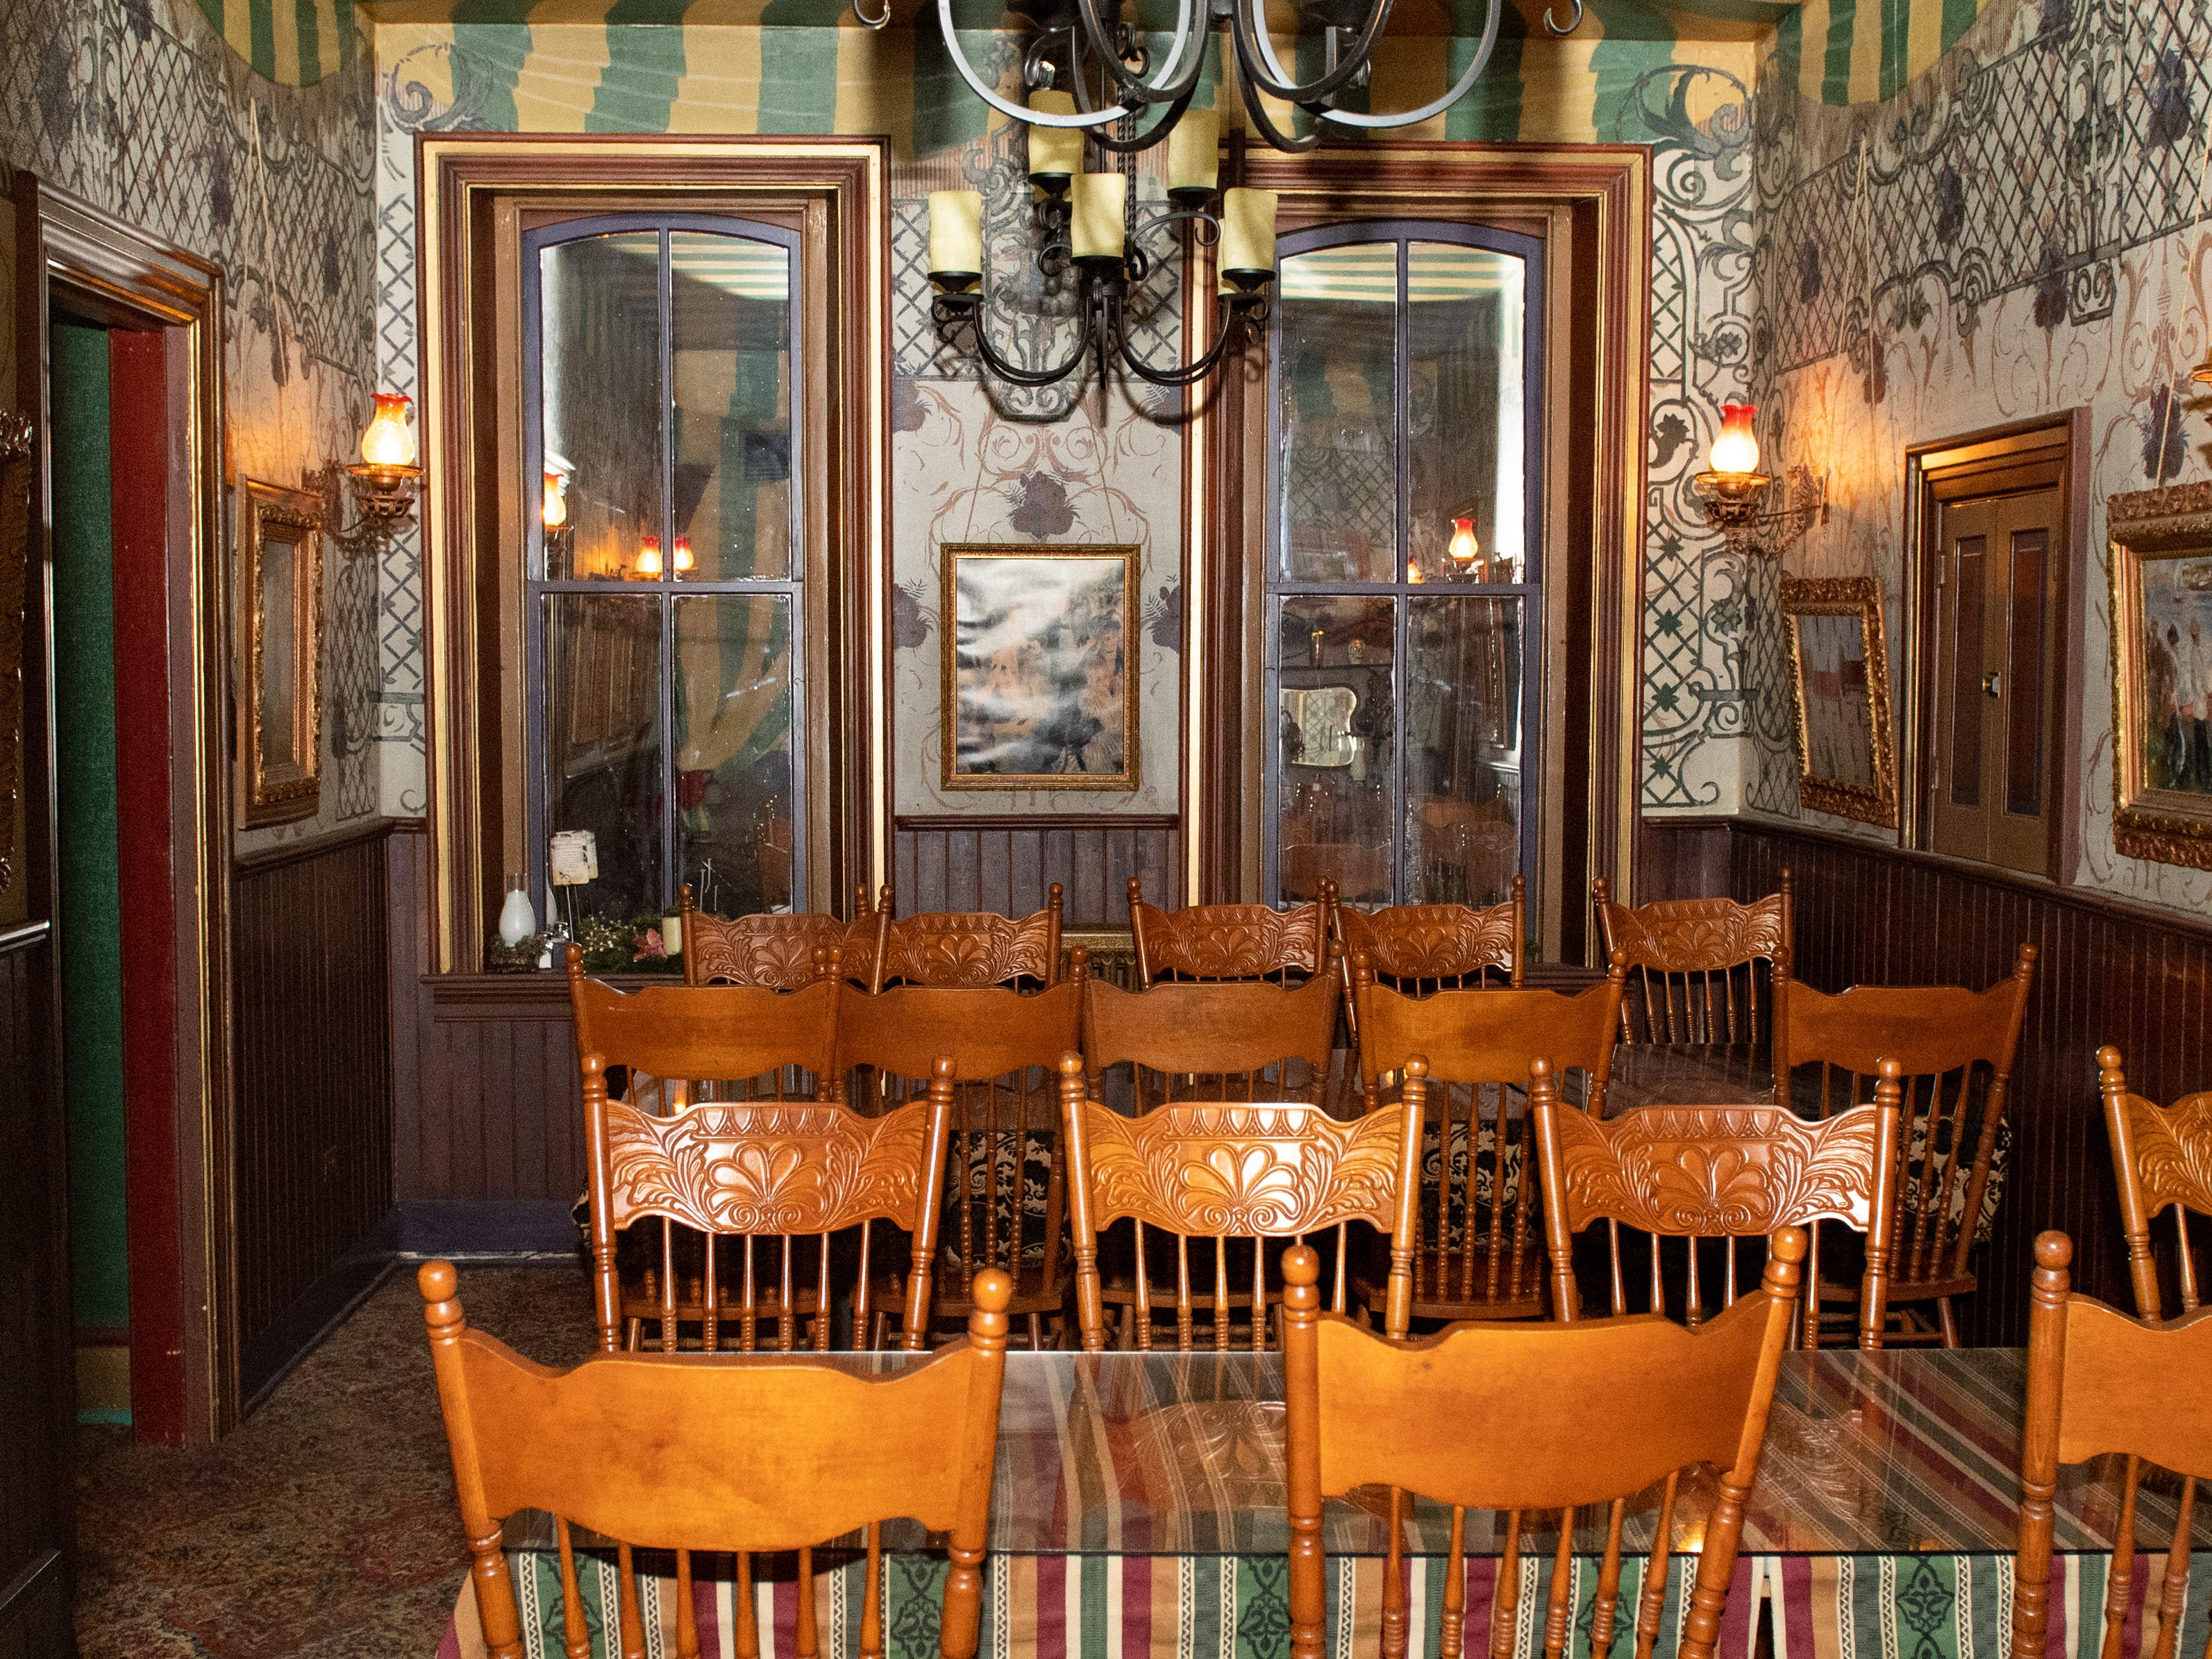 Inside Alois dining room on the second floor of the  Victorian hotel at Bube's Brewery. Alois is used primarily as a bar and banquet space for private parties, weddings or the murder mystery dinners, February 22, 2019.